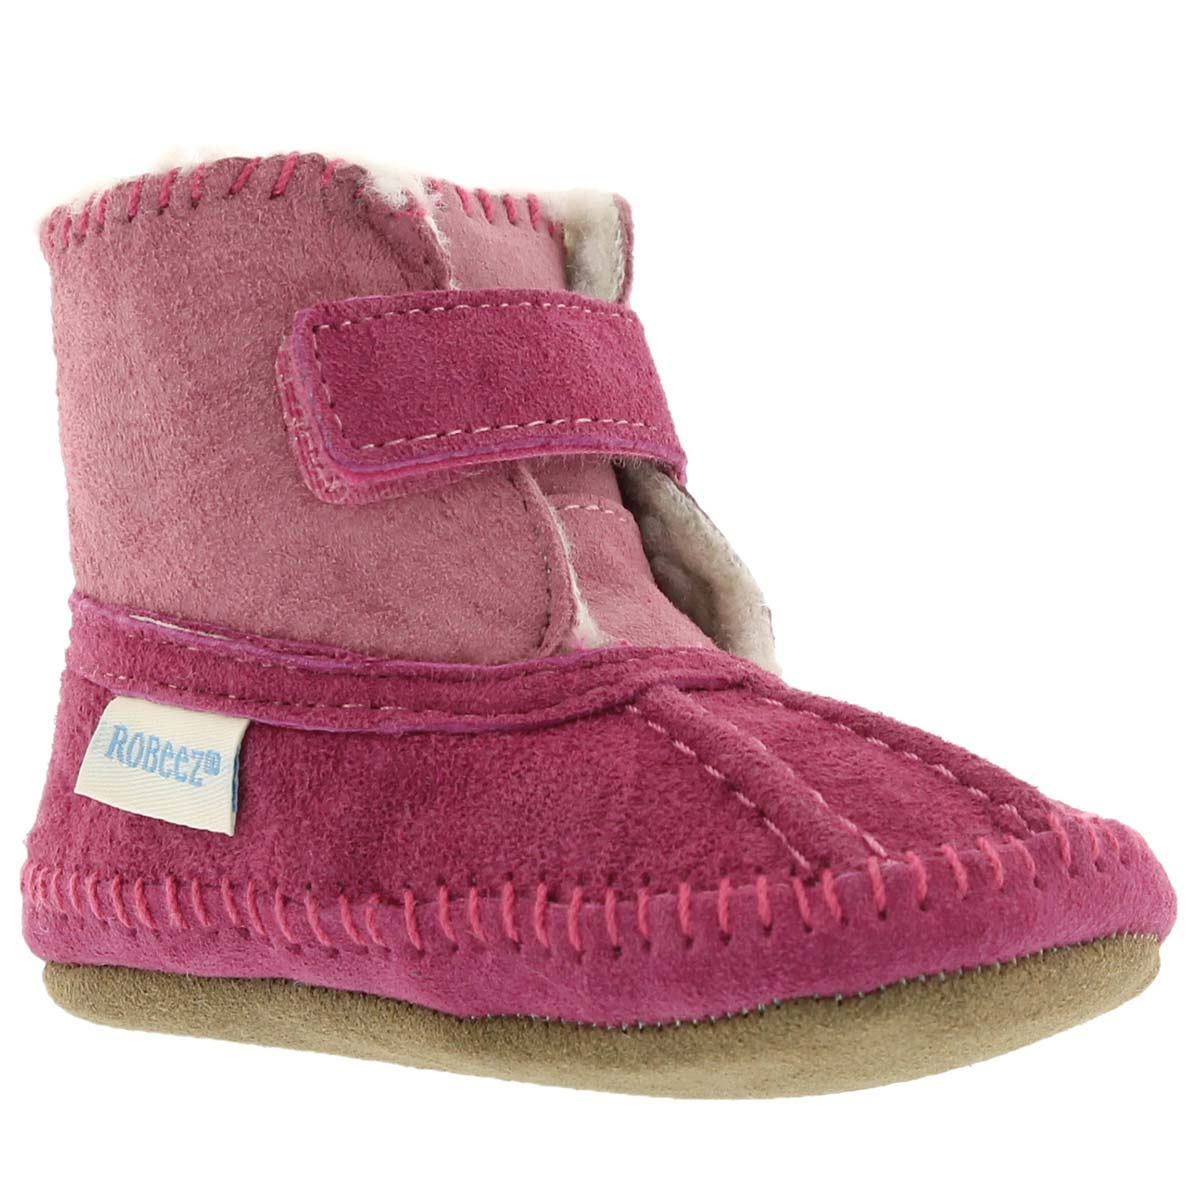 Infants' GALWAY COZY BOOTIE pink slippers